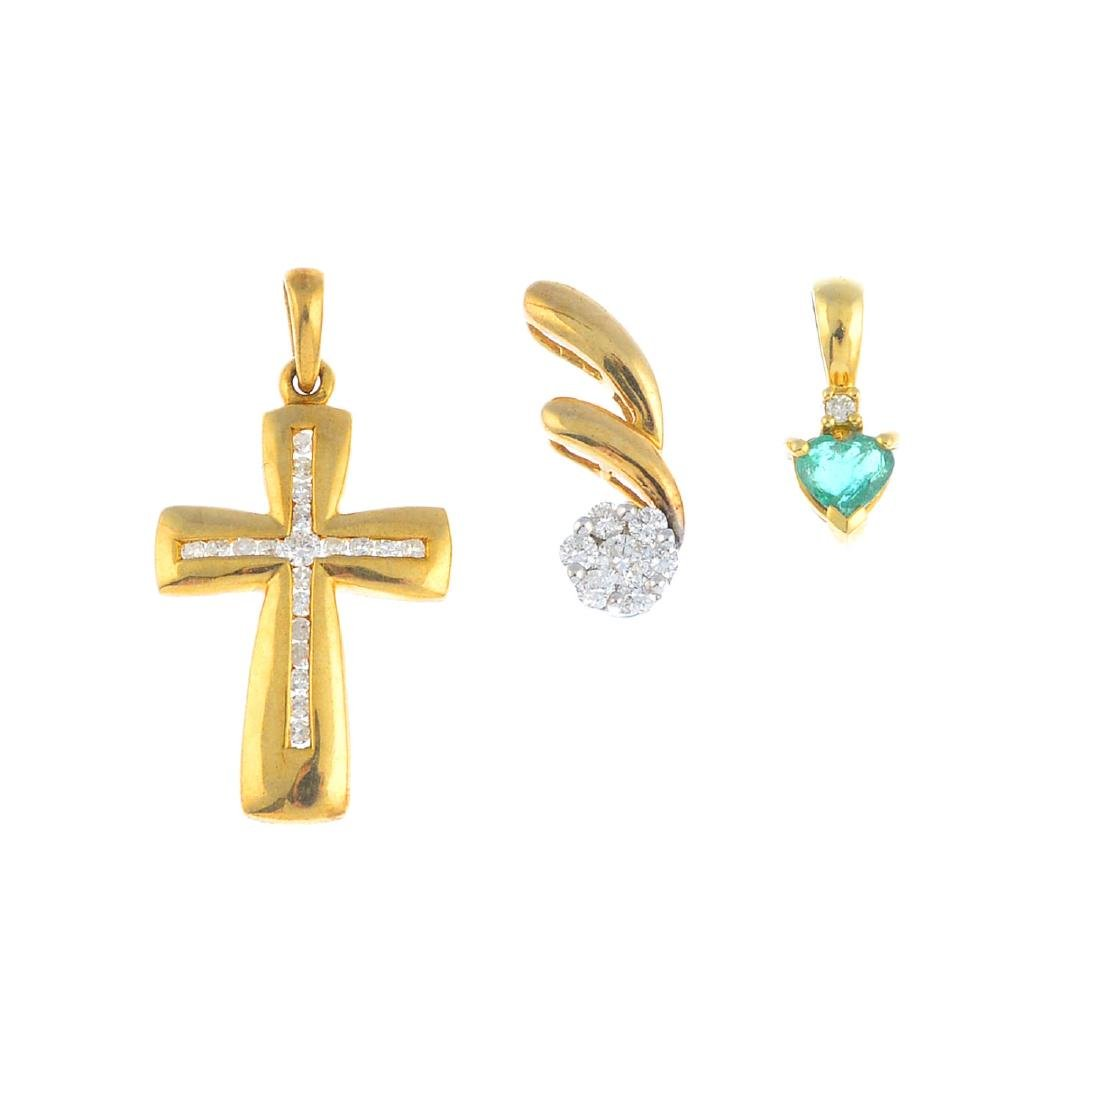 A selection of 9ct gold jewellery. To include a diamond